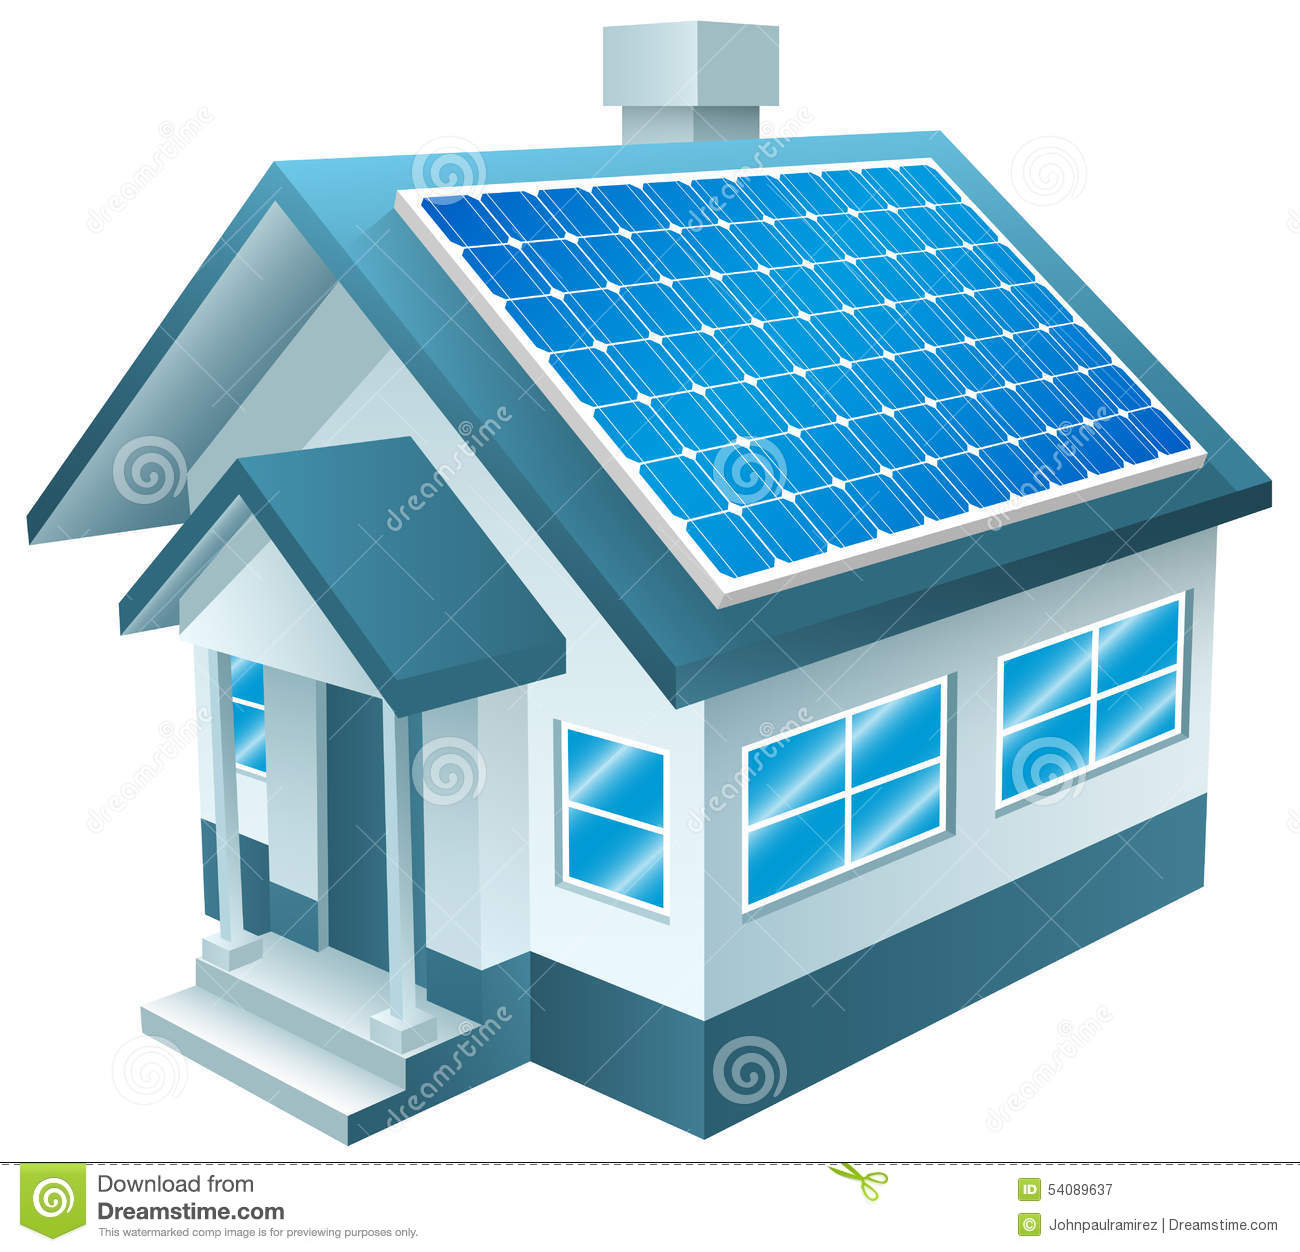 Alternative energy for the home: an overview of non-standard sources of energy modern solutions 13